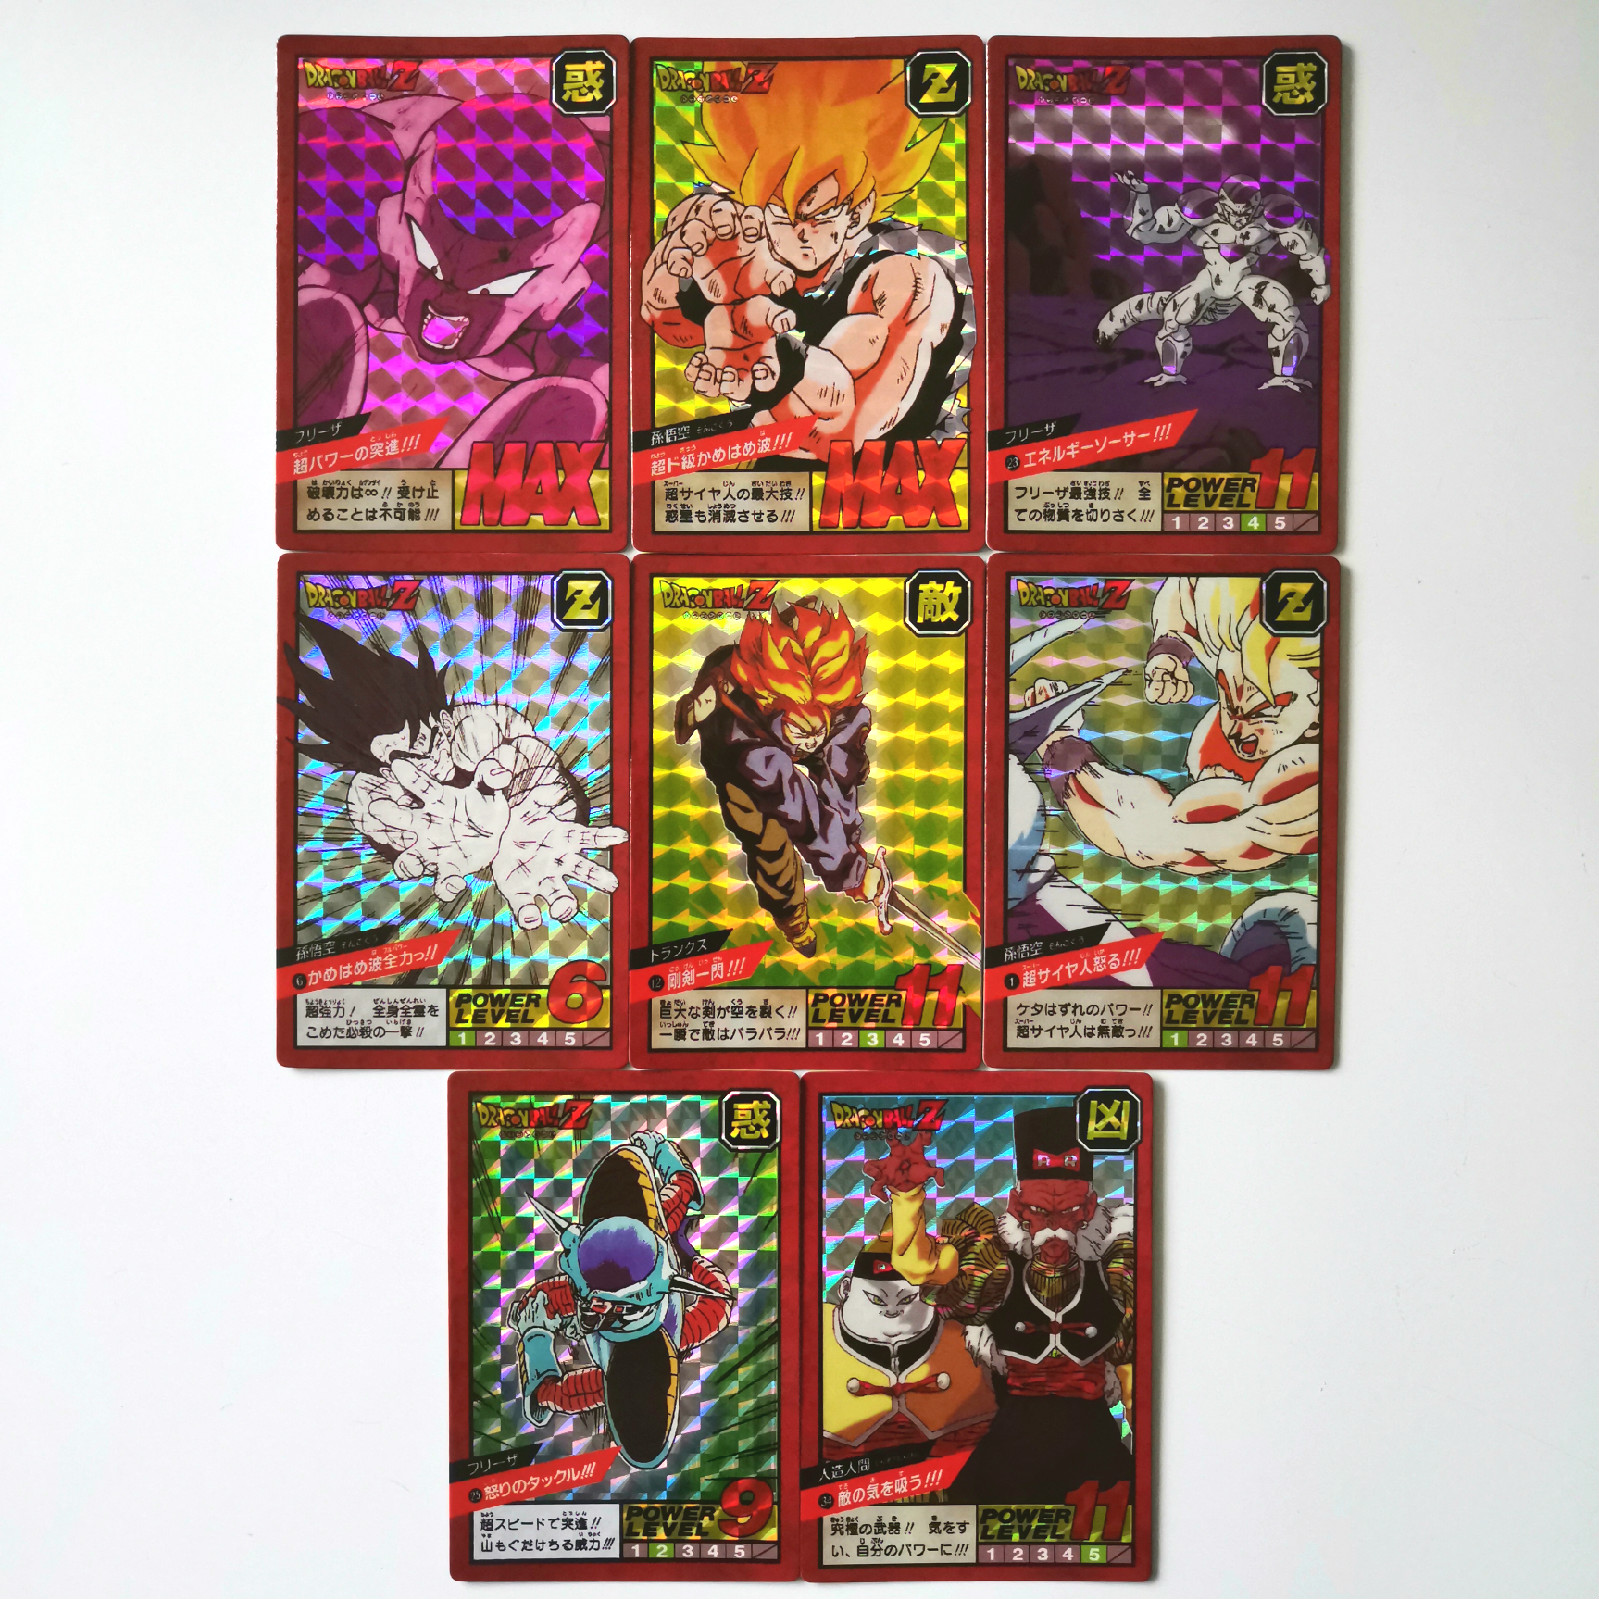 8pcs/set Super Dragon Ball Z Fighting 1 Reissue Heroes Battle Card Ultra Instinct Goku Vegeta Game Collection Cards